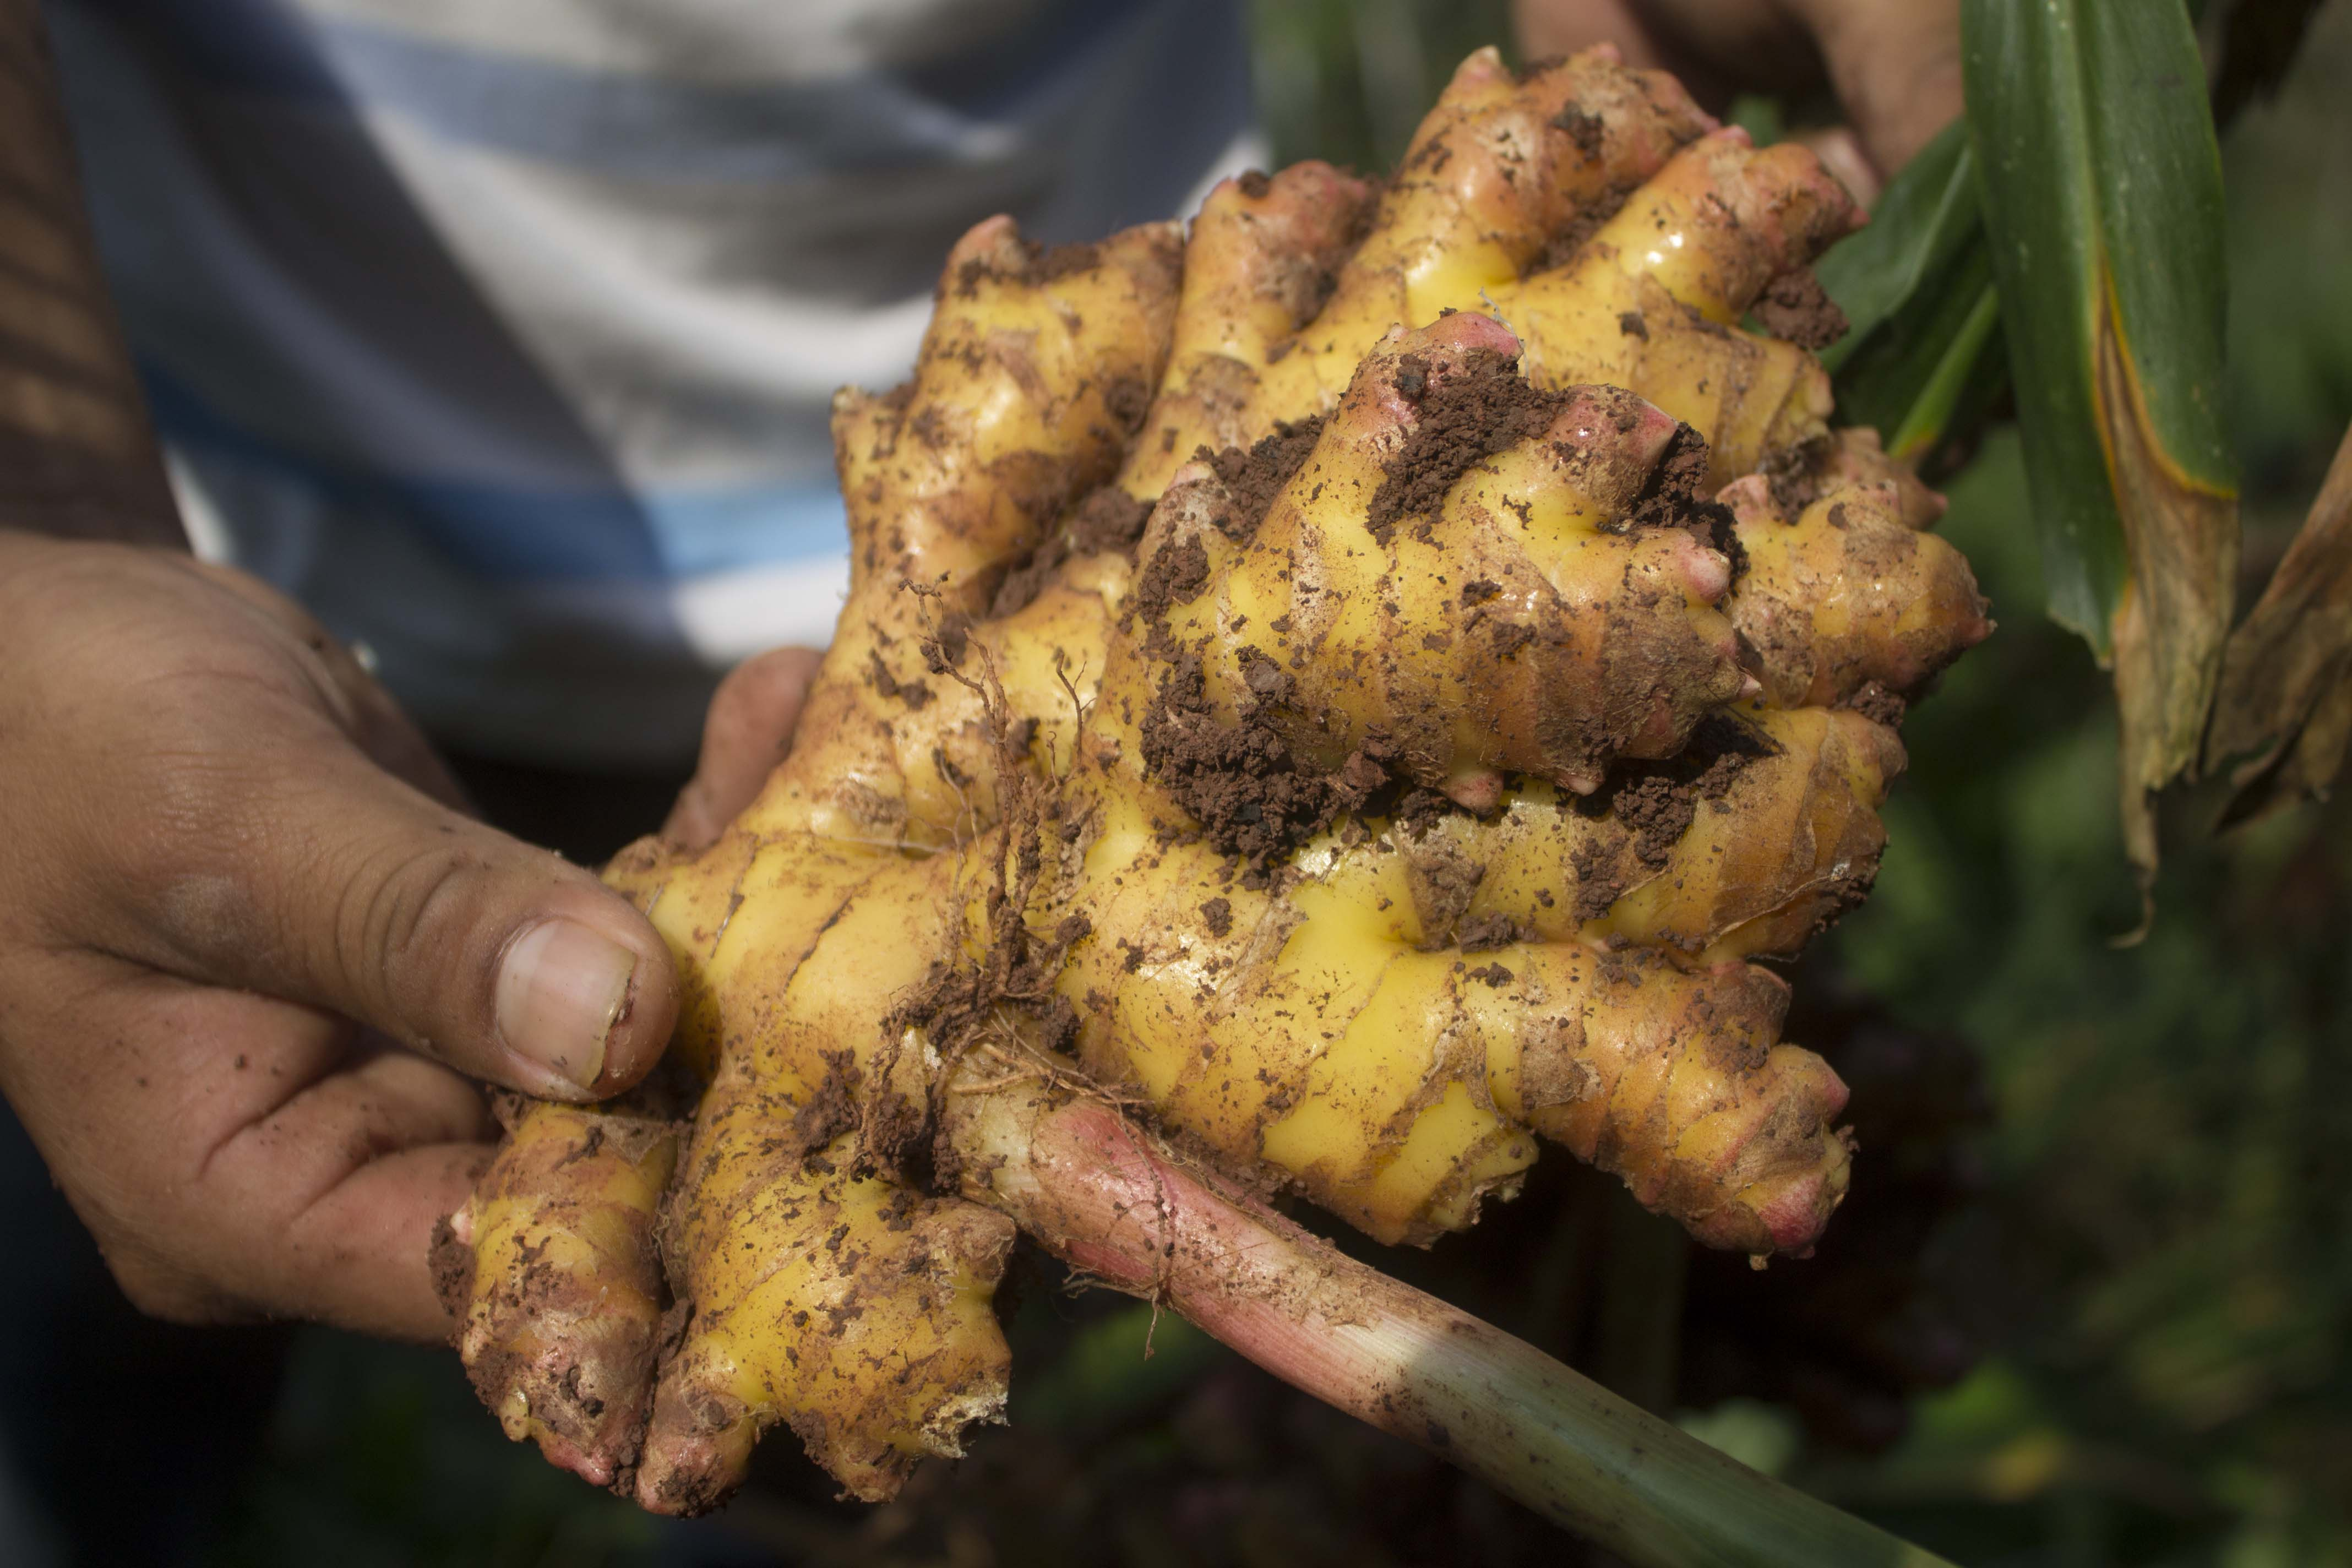 Peruvian farmer handles fresh ginger on the farm, close-up photo of ginger root